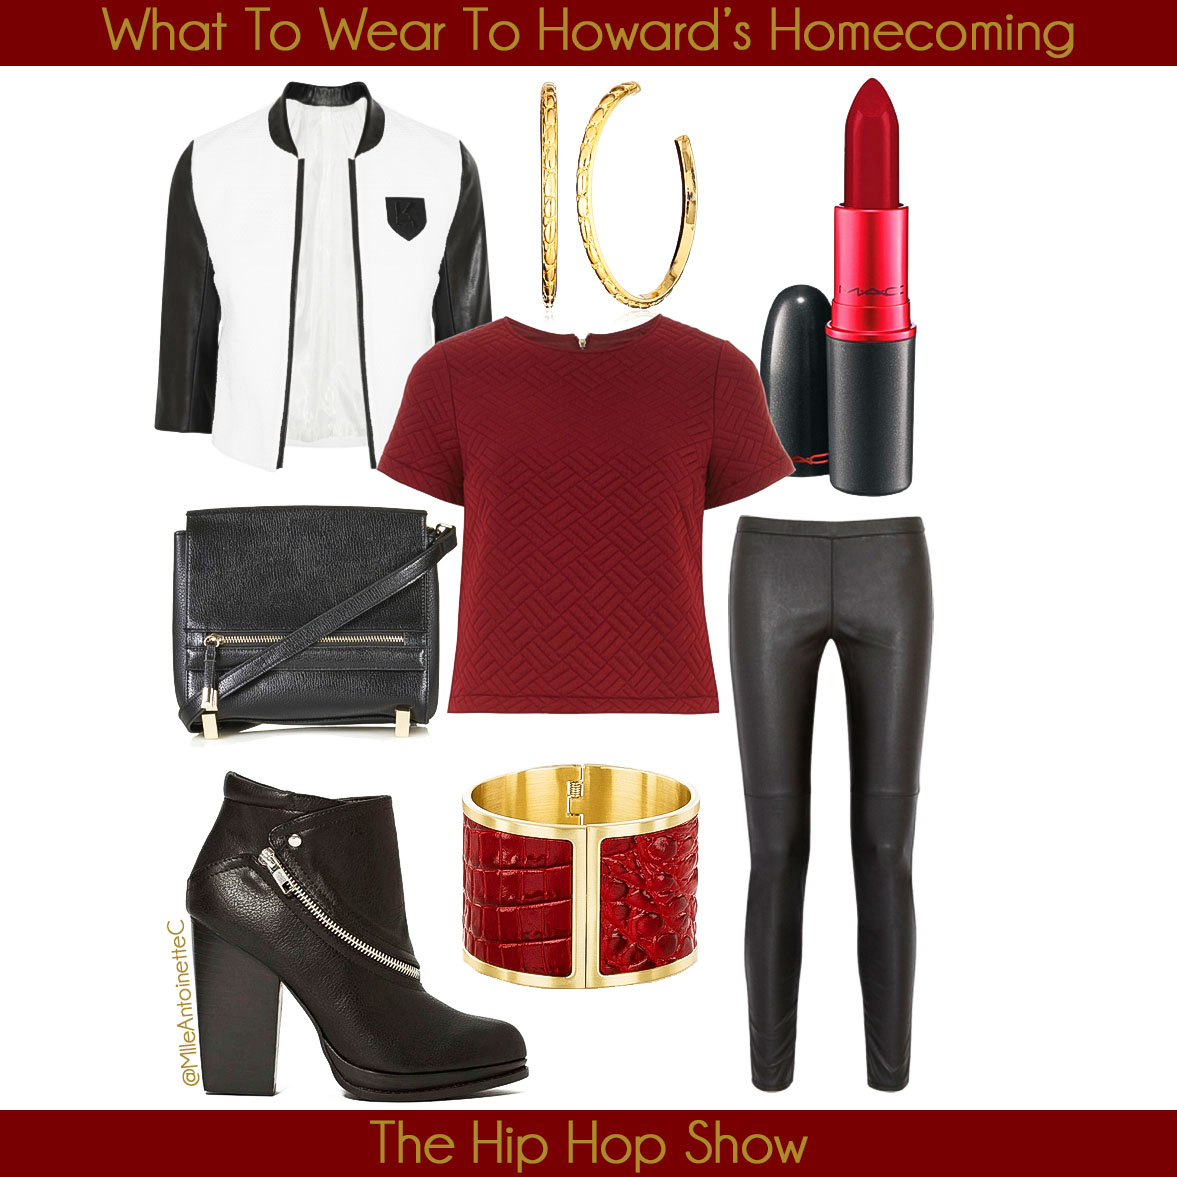 HipHopShow